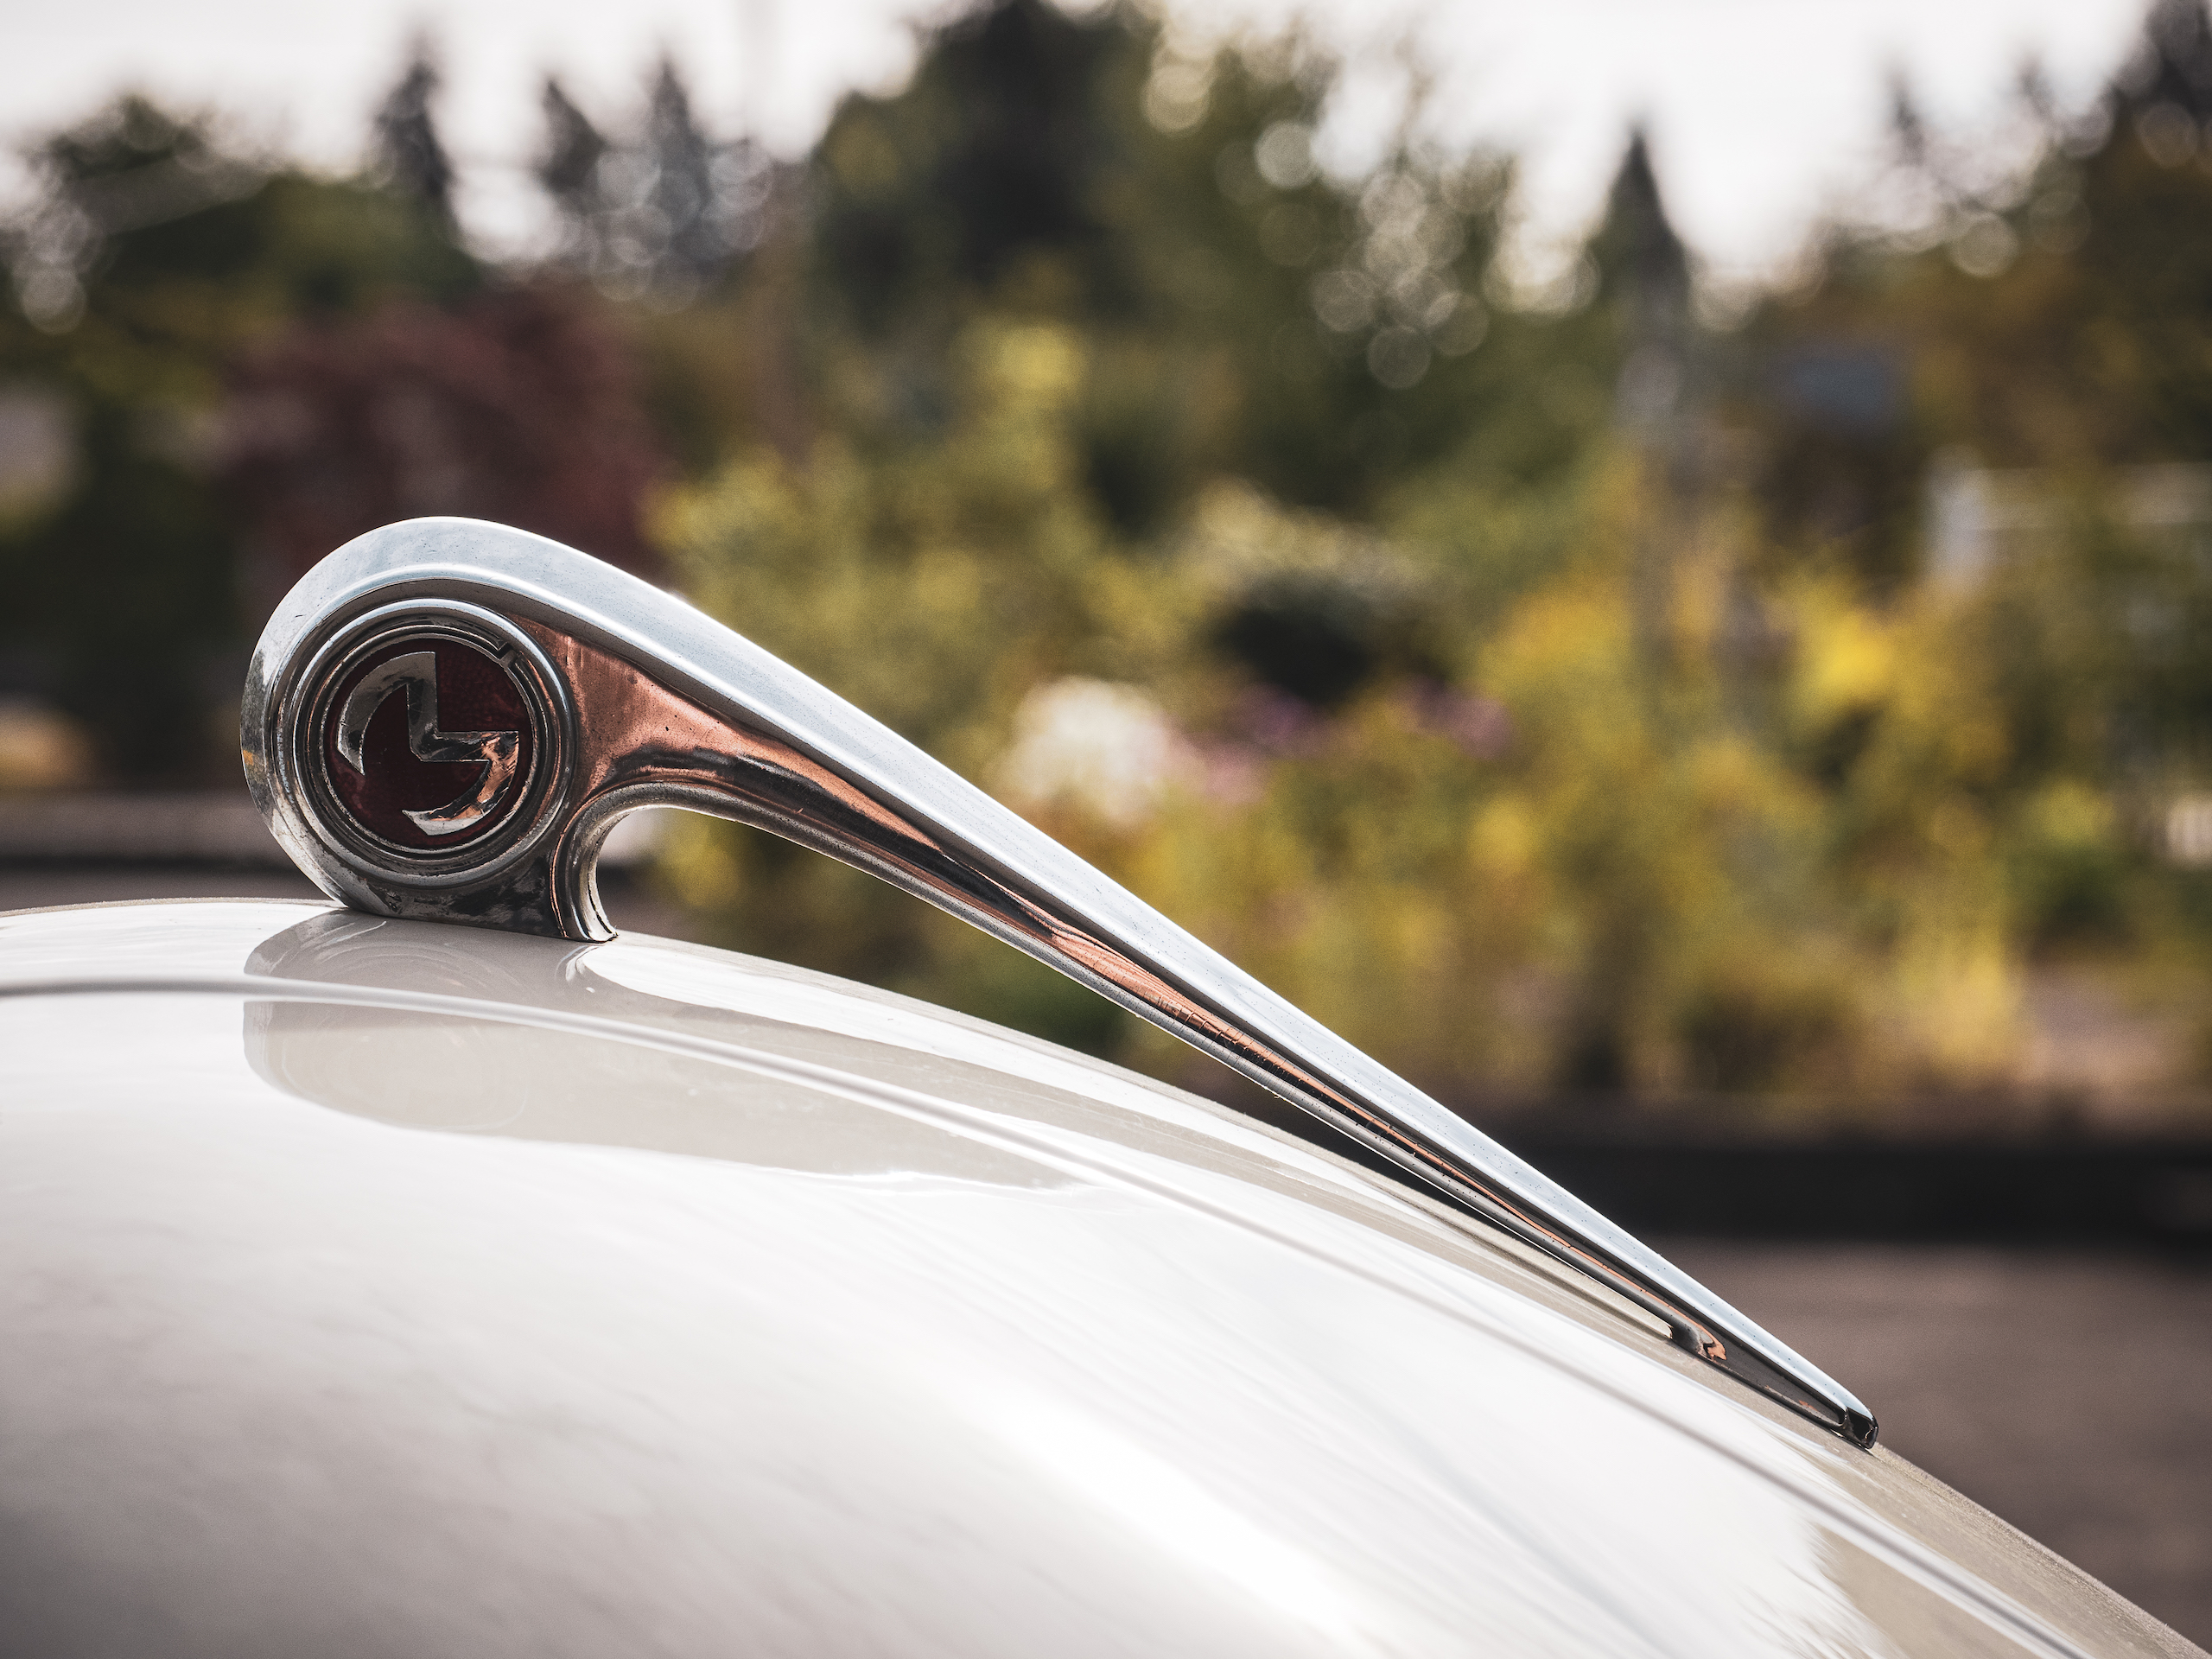 Morris Minor hood ornament